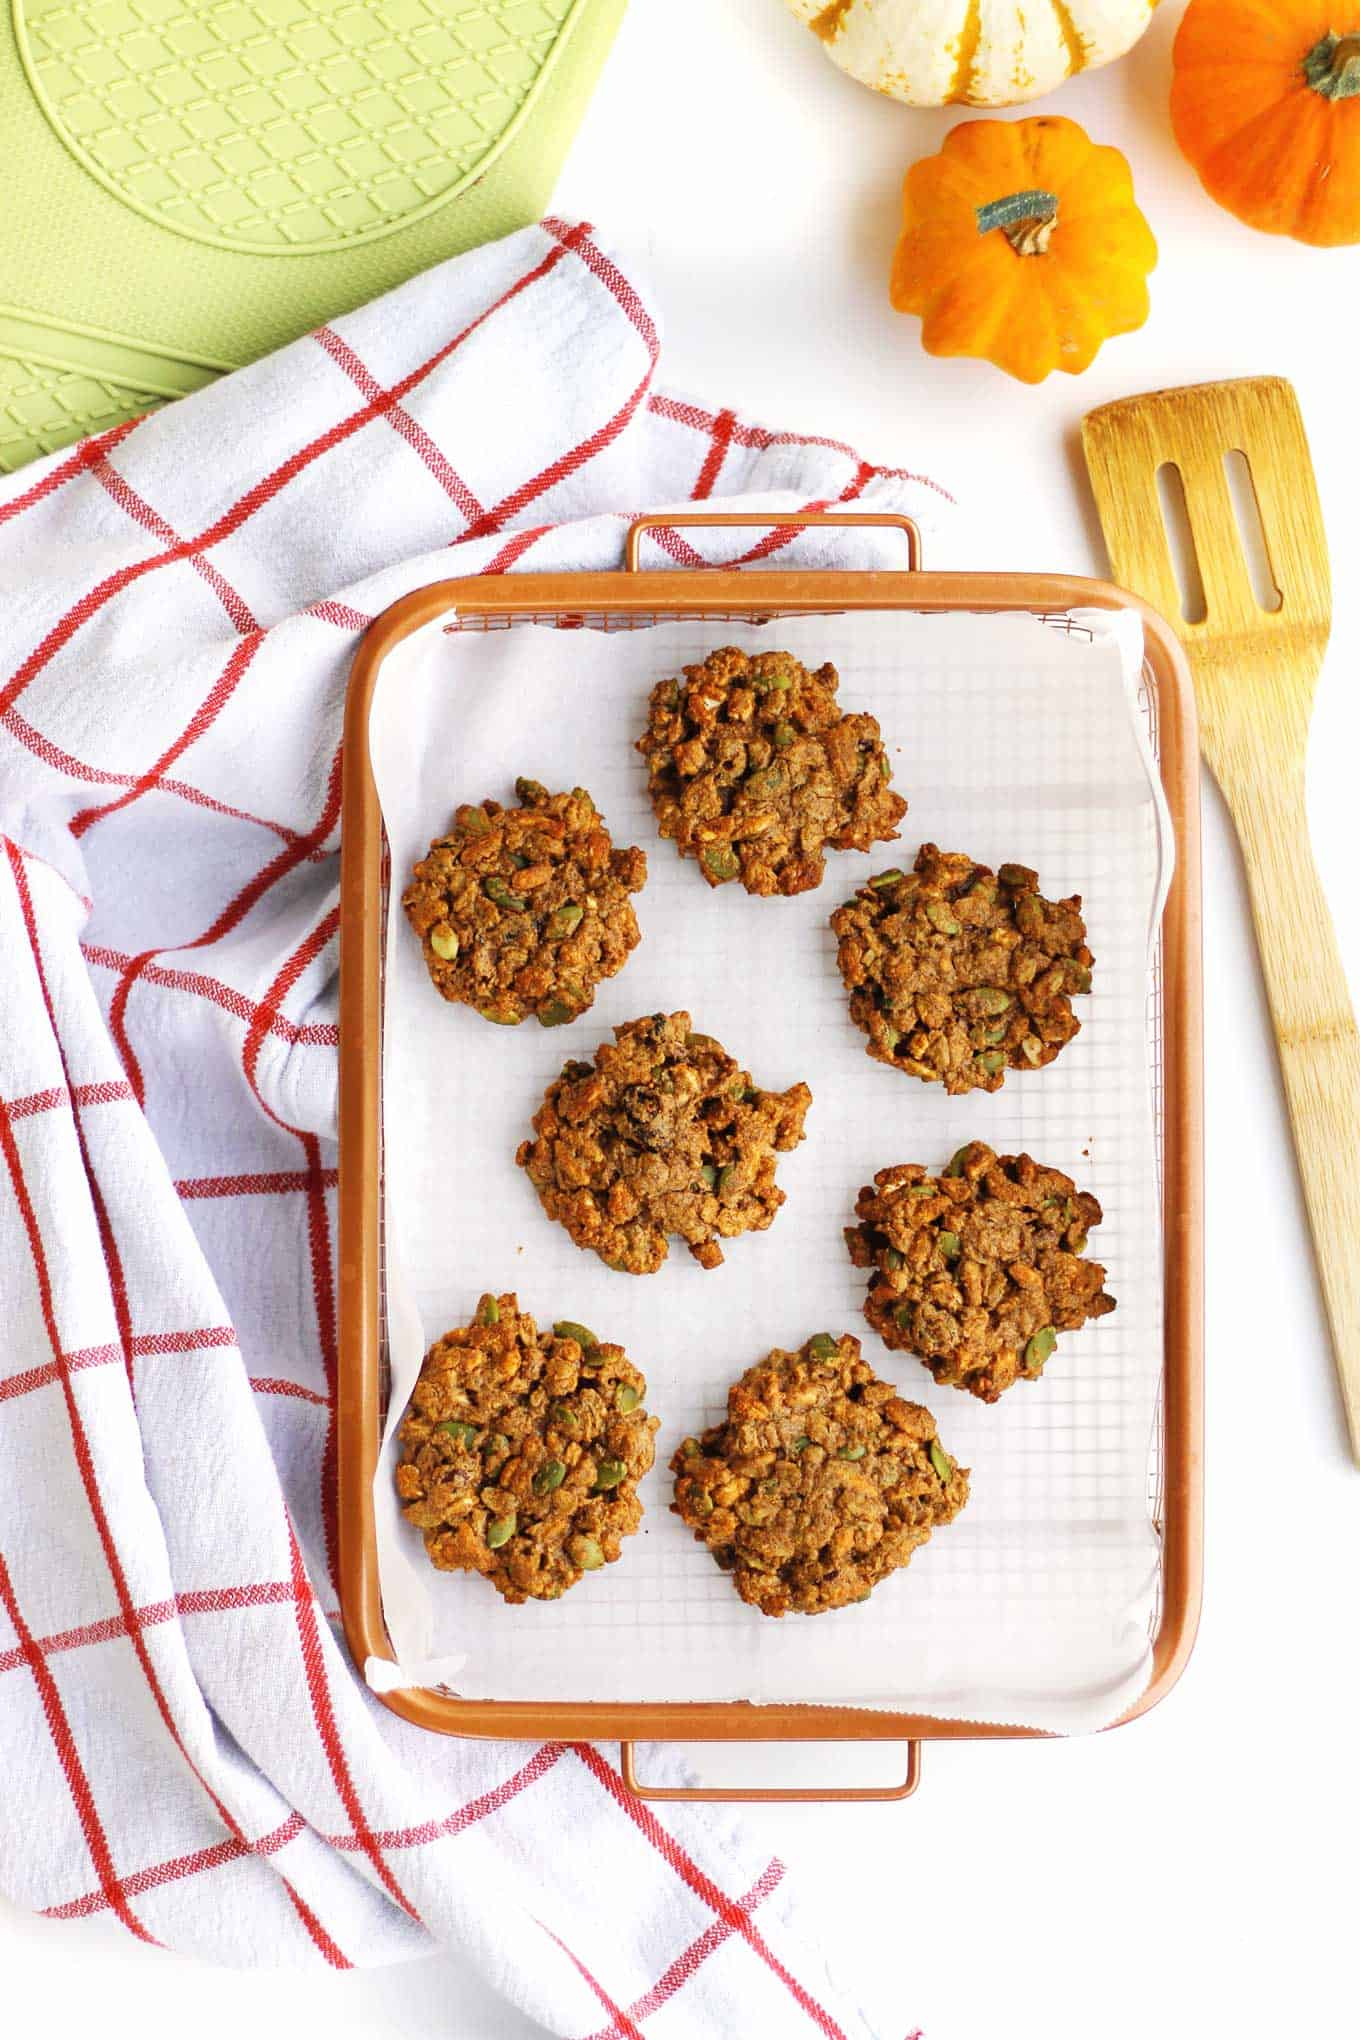 Pumpkin spice oatmeal morning cookies recipe! These vegan and gluten-free, healthy oatmeal cookies from The Vegan 8 cookbook are the perfect grab and go breakfast. // Rhubarbarians // breakfast cookies / nut-free option / #vegancookies #pumpkinspice #rhubarbarians #vegan8